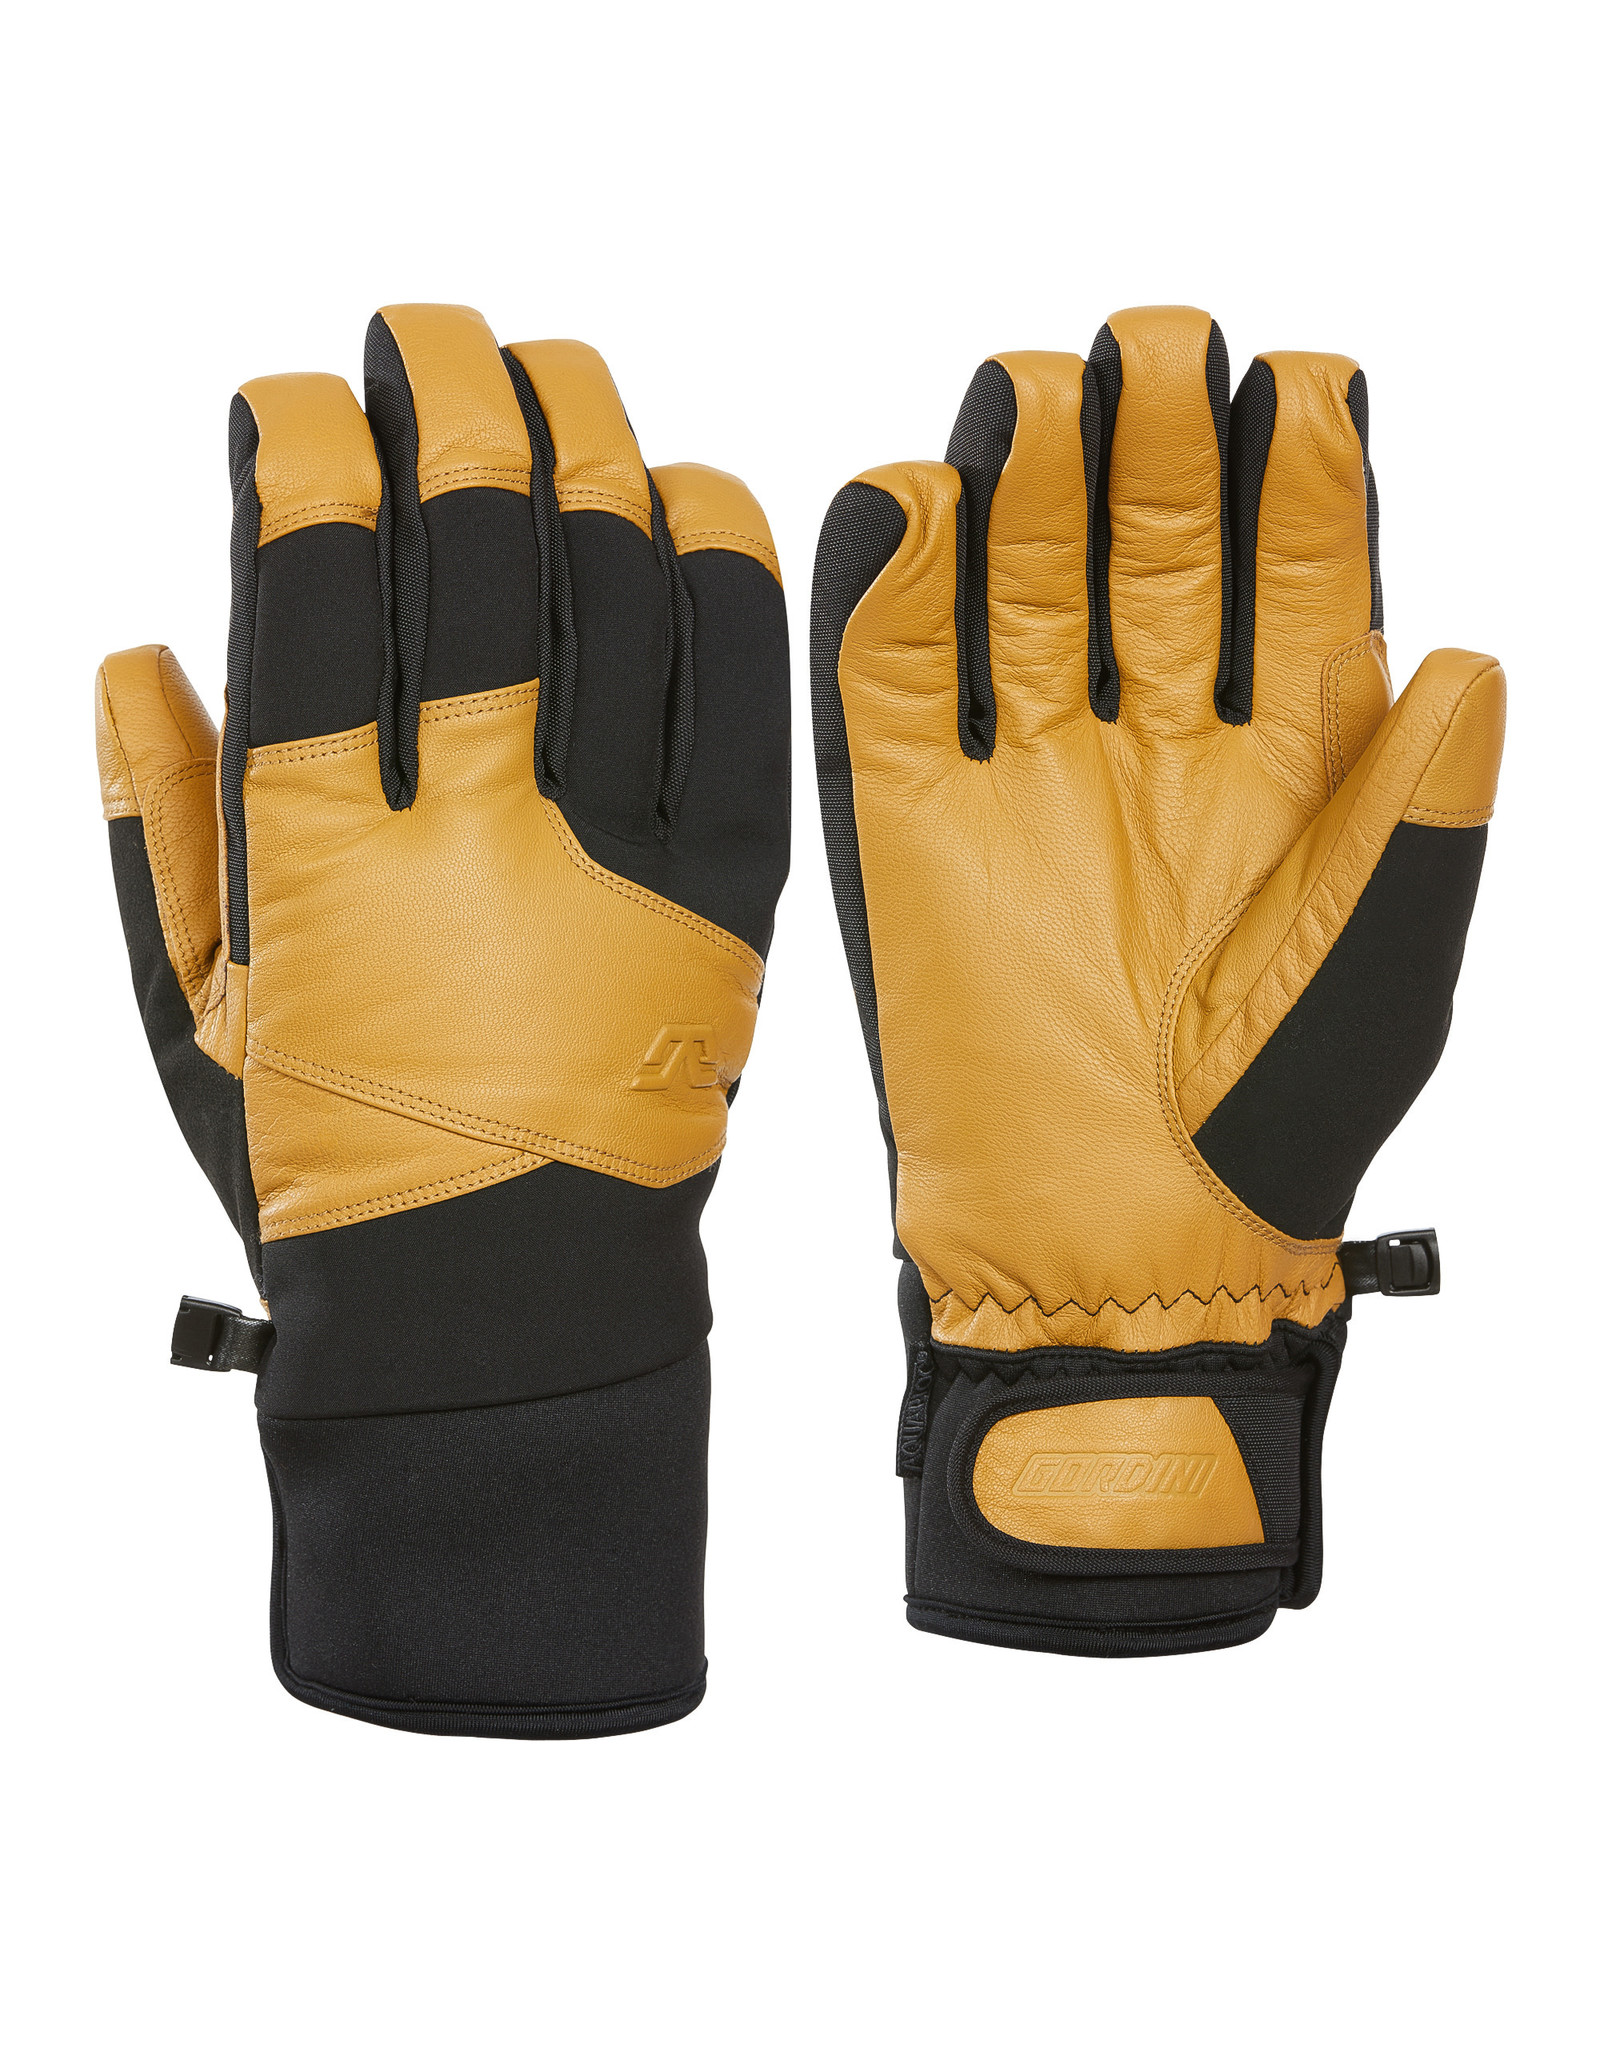 GORDINI GORDINI MOUNTAIN CREW MENS GLOVE BLACK-TAN 20